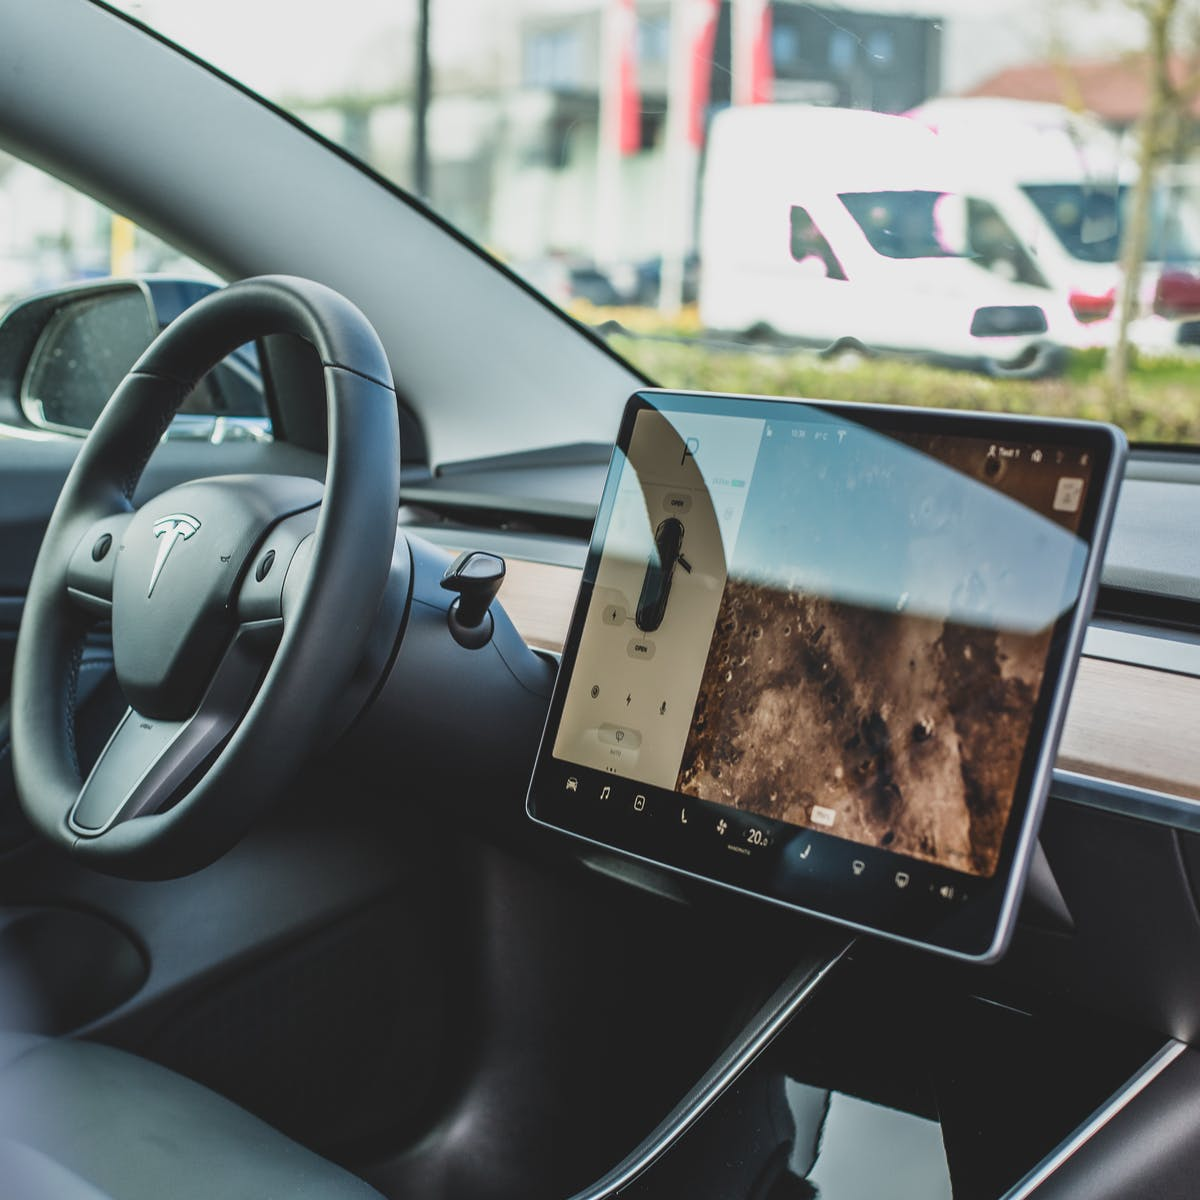 Tesla's futuristic self-driving feature has become a social media hit